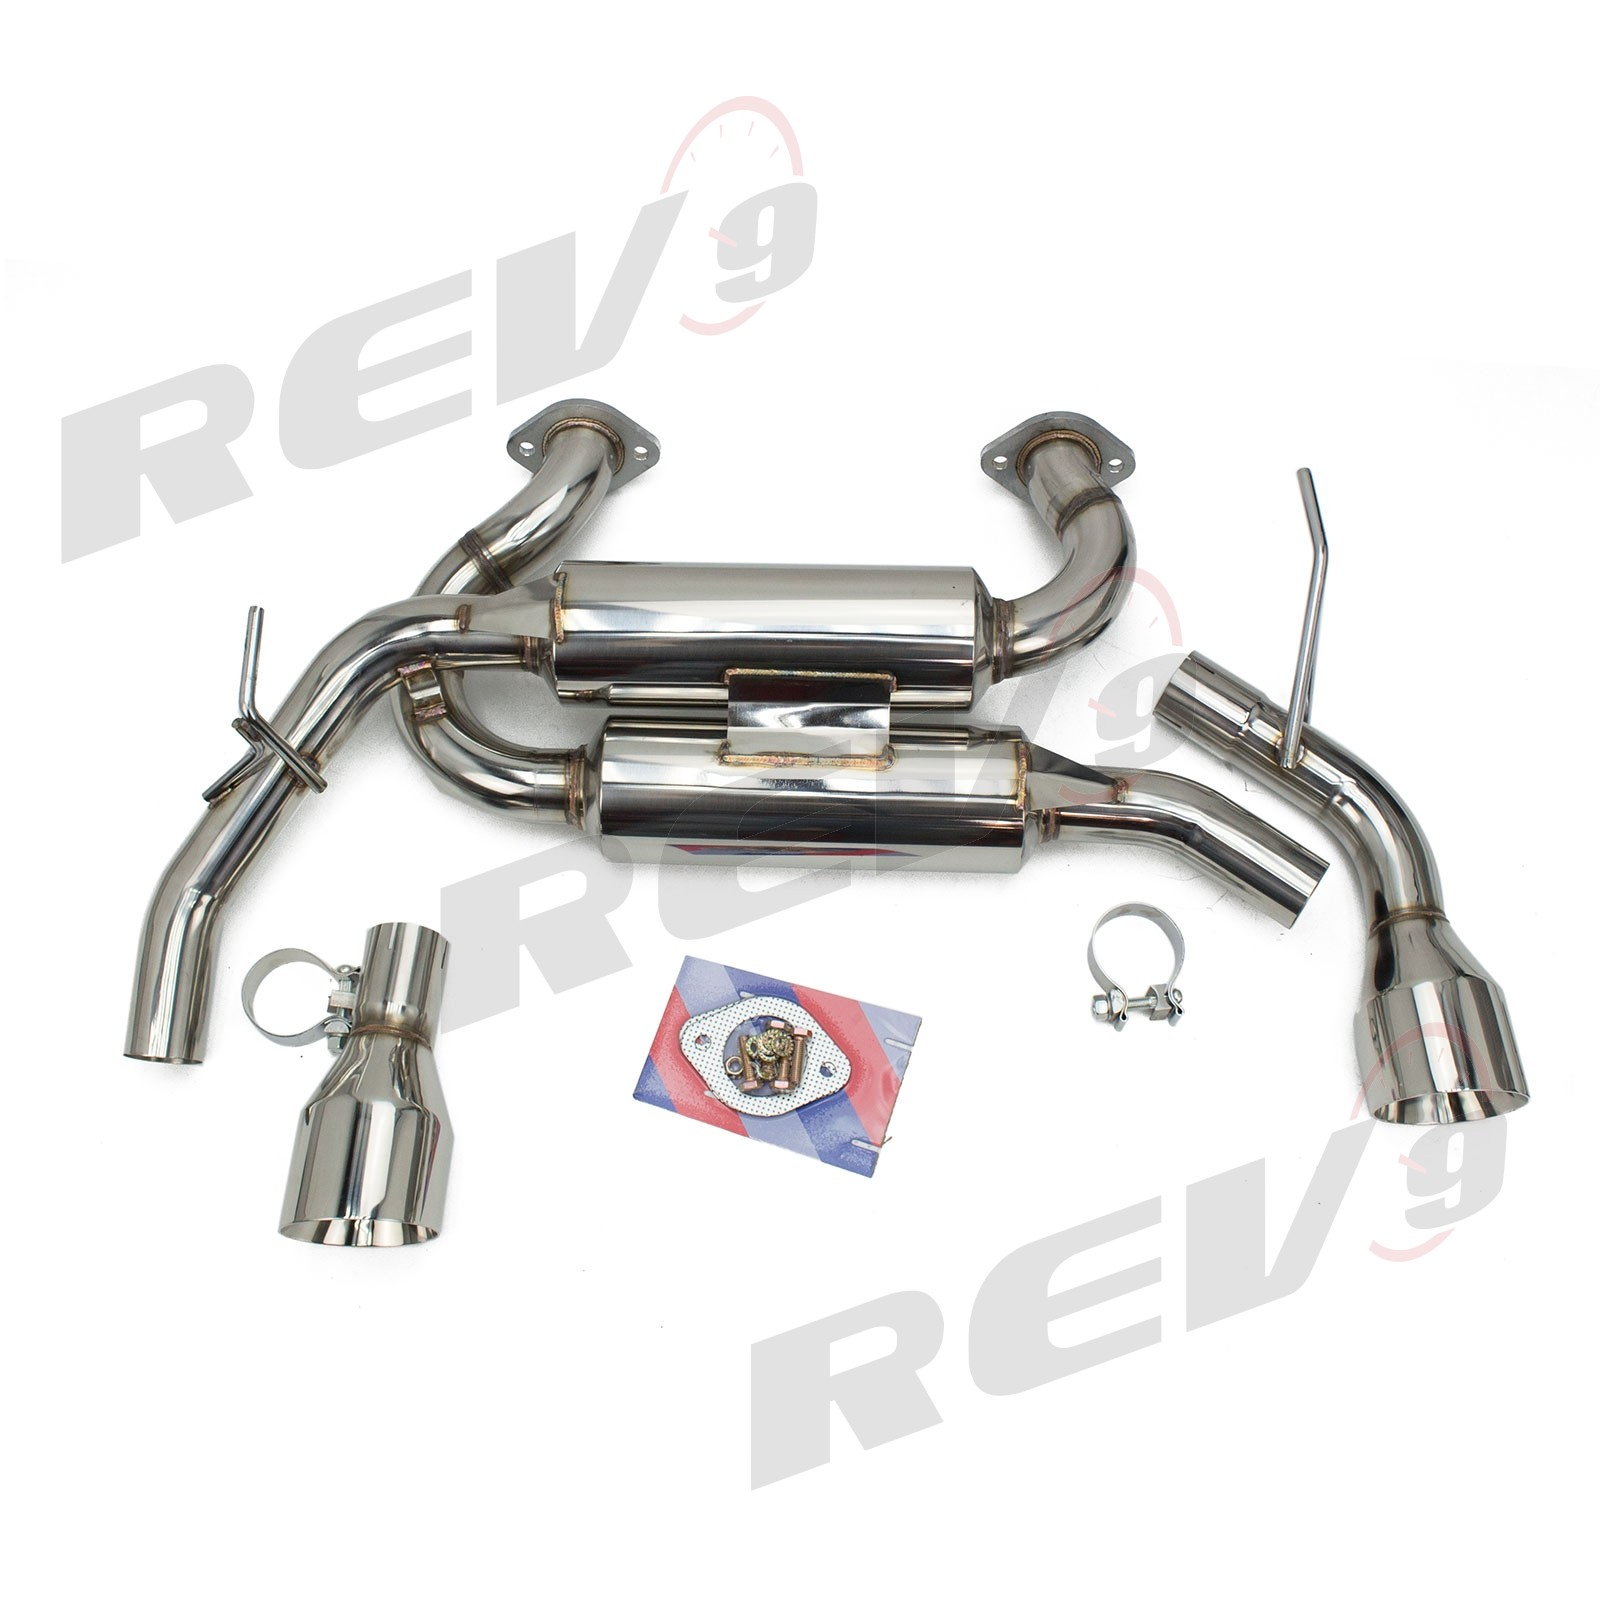 rev9 flowmaxx stainless axle